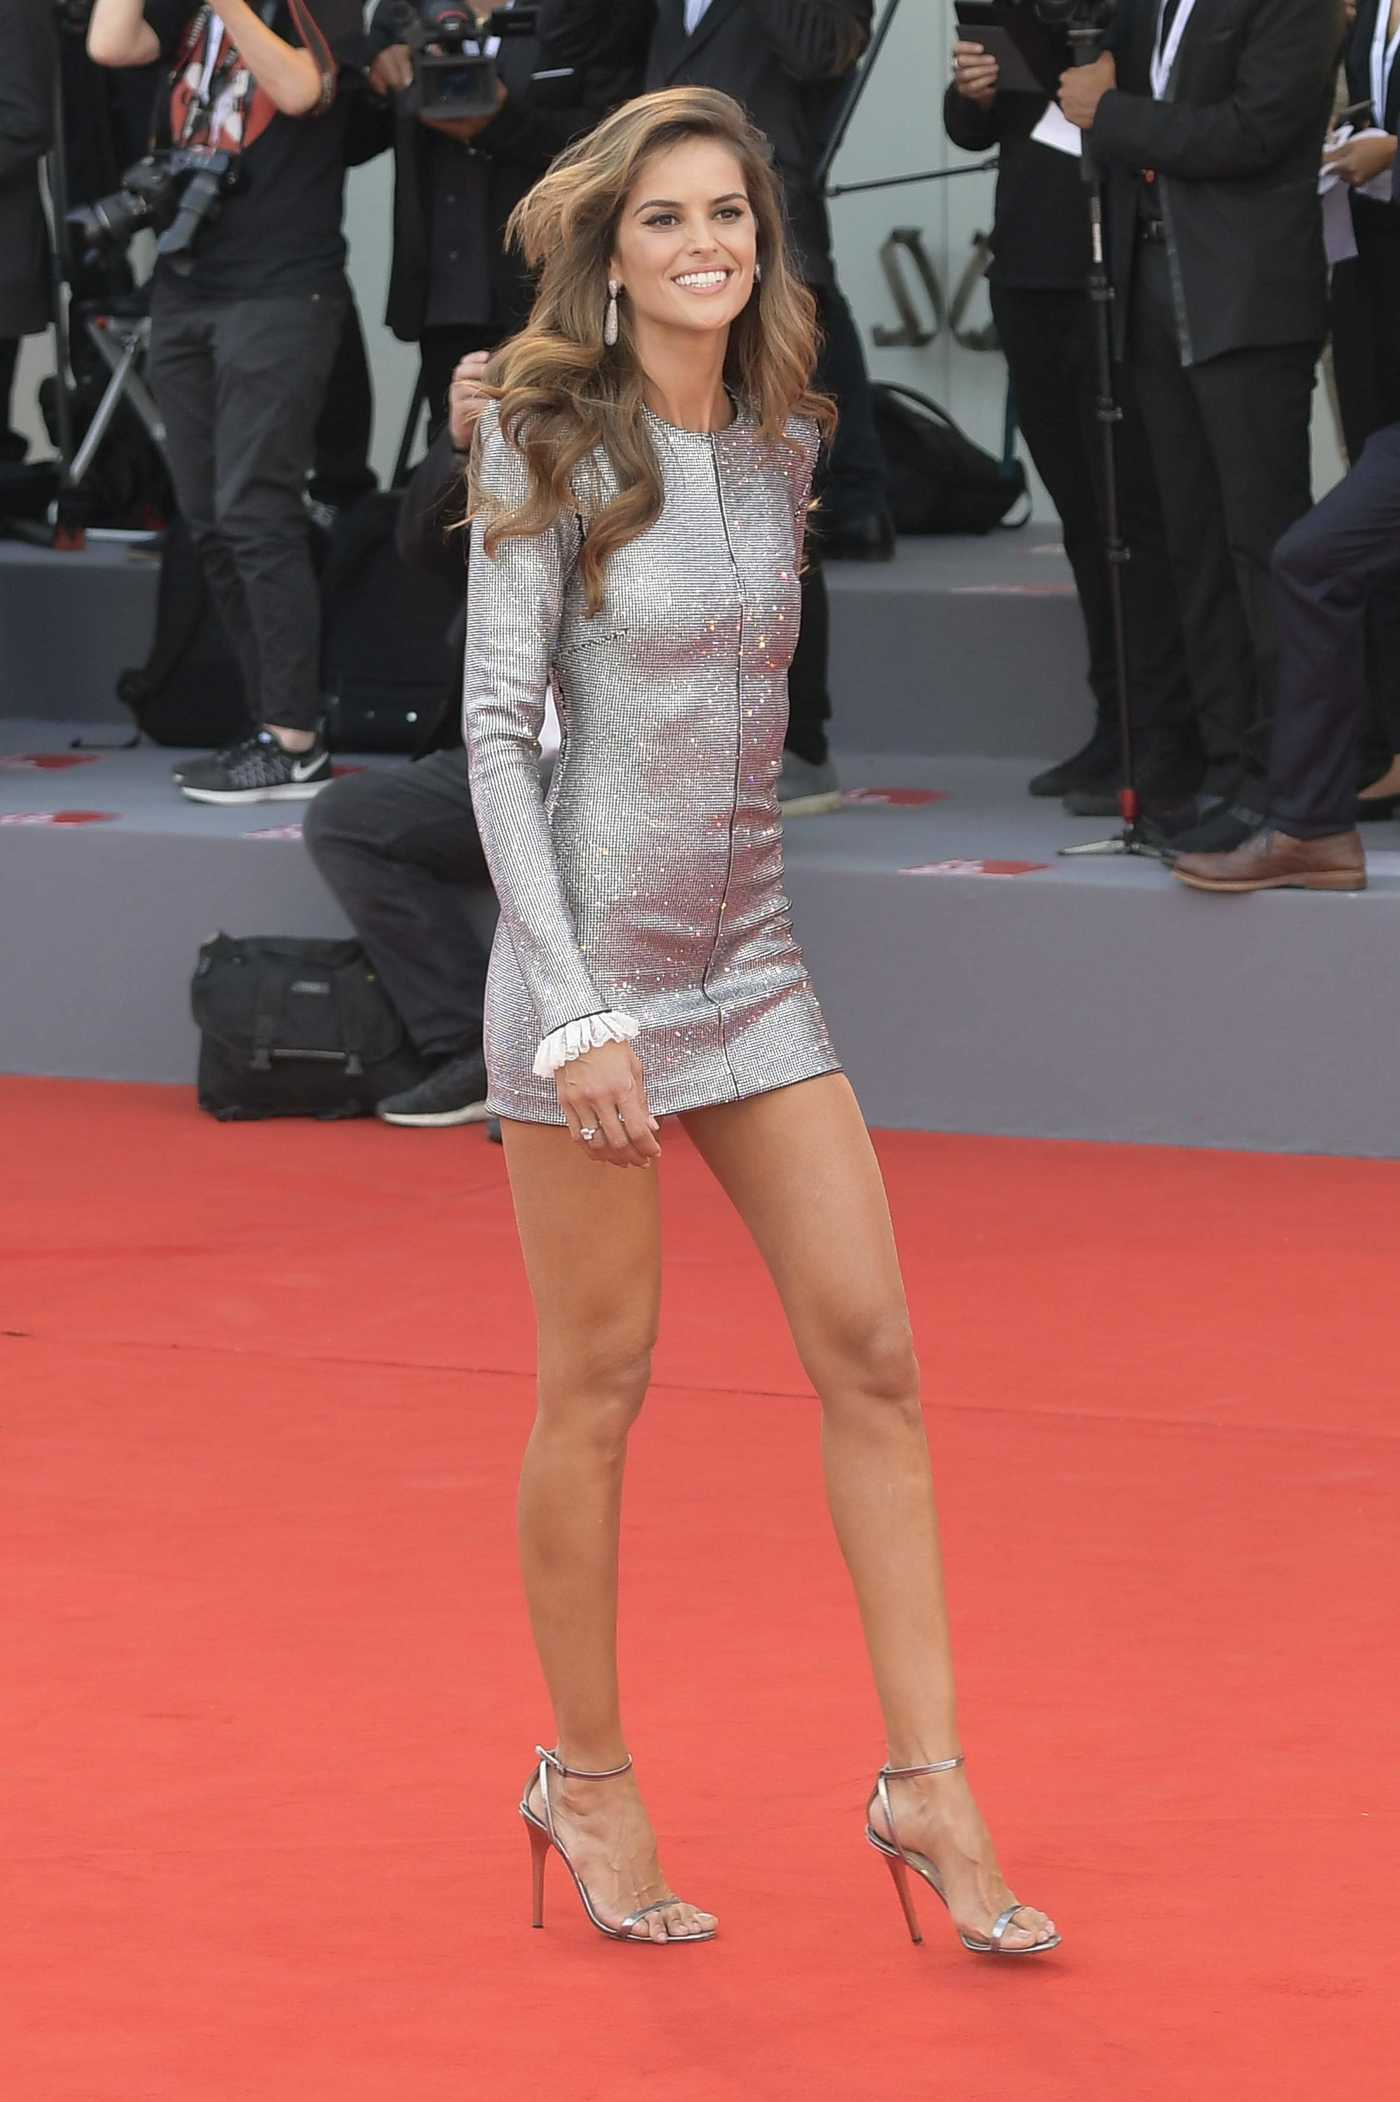 Izabel Goulart at Rome Premiere During the 75th Venice Film Festival in Venice 08/30/2018